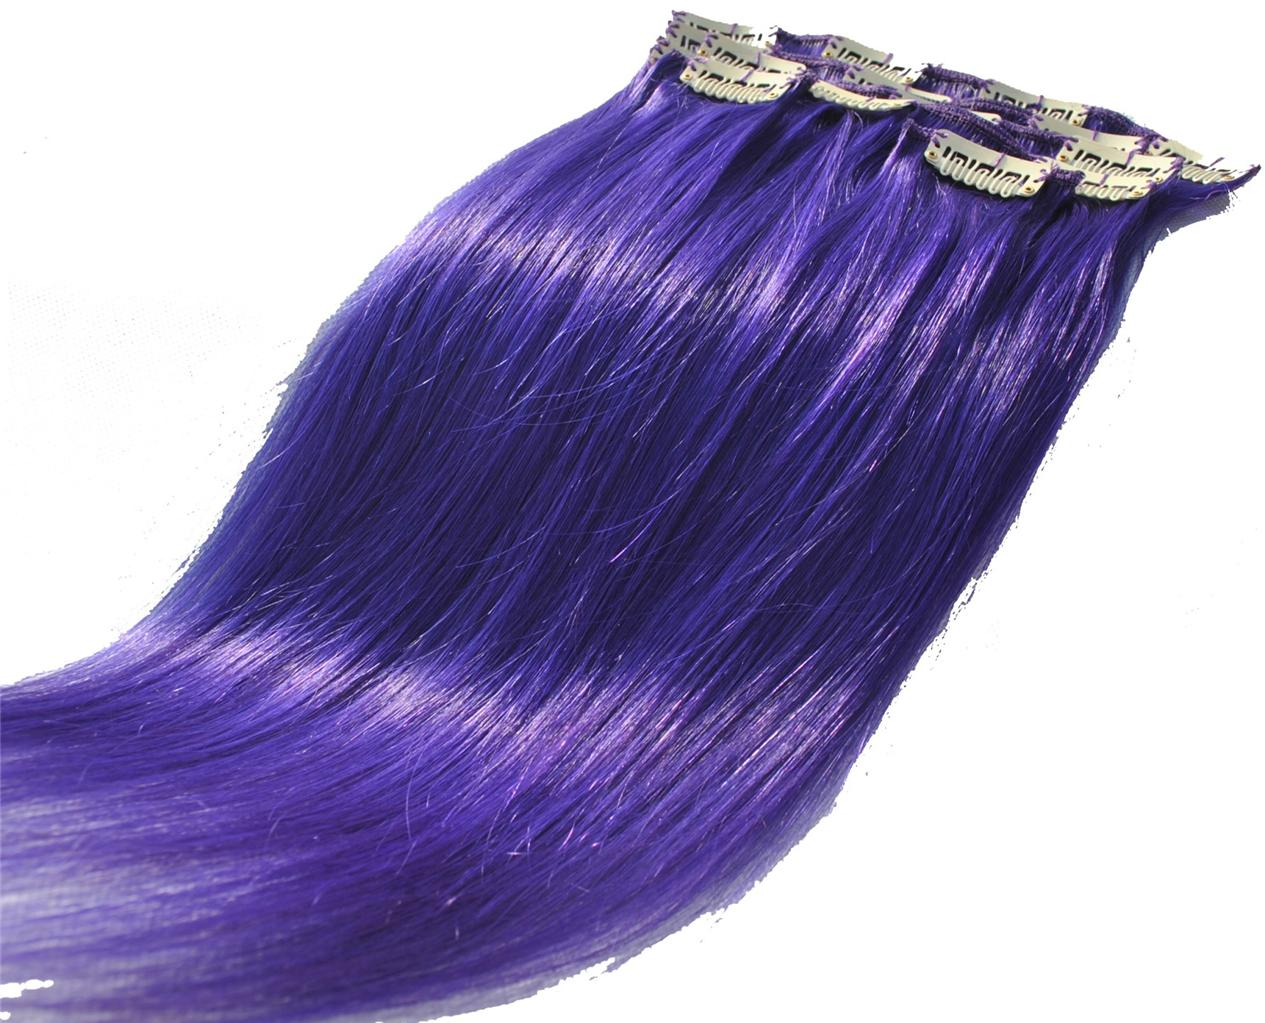 16-Clip-in-on-real-human-hair-extensions-remy-full-head-purple